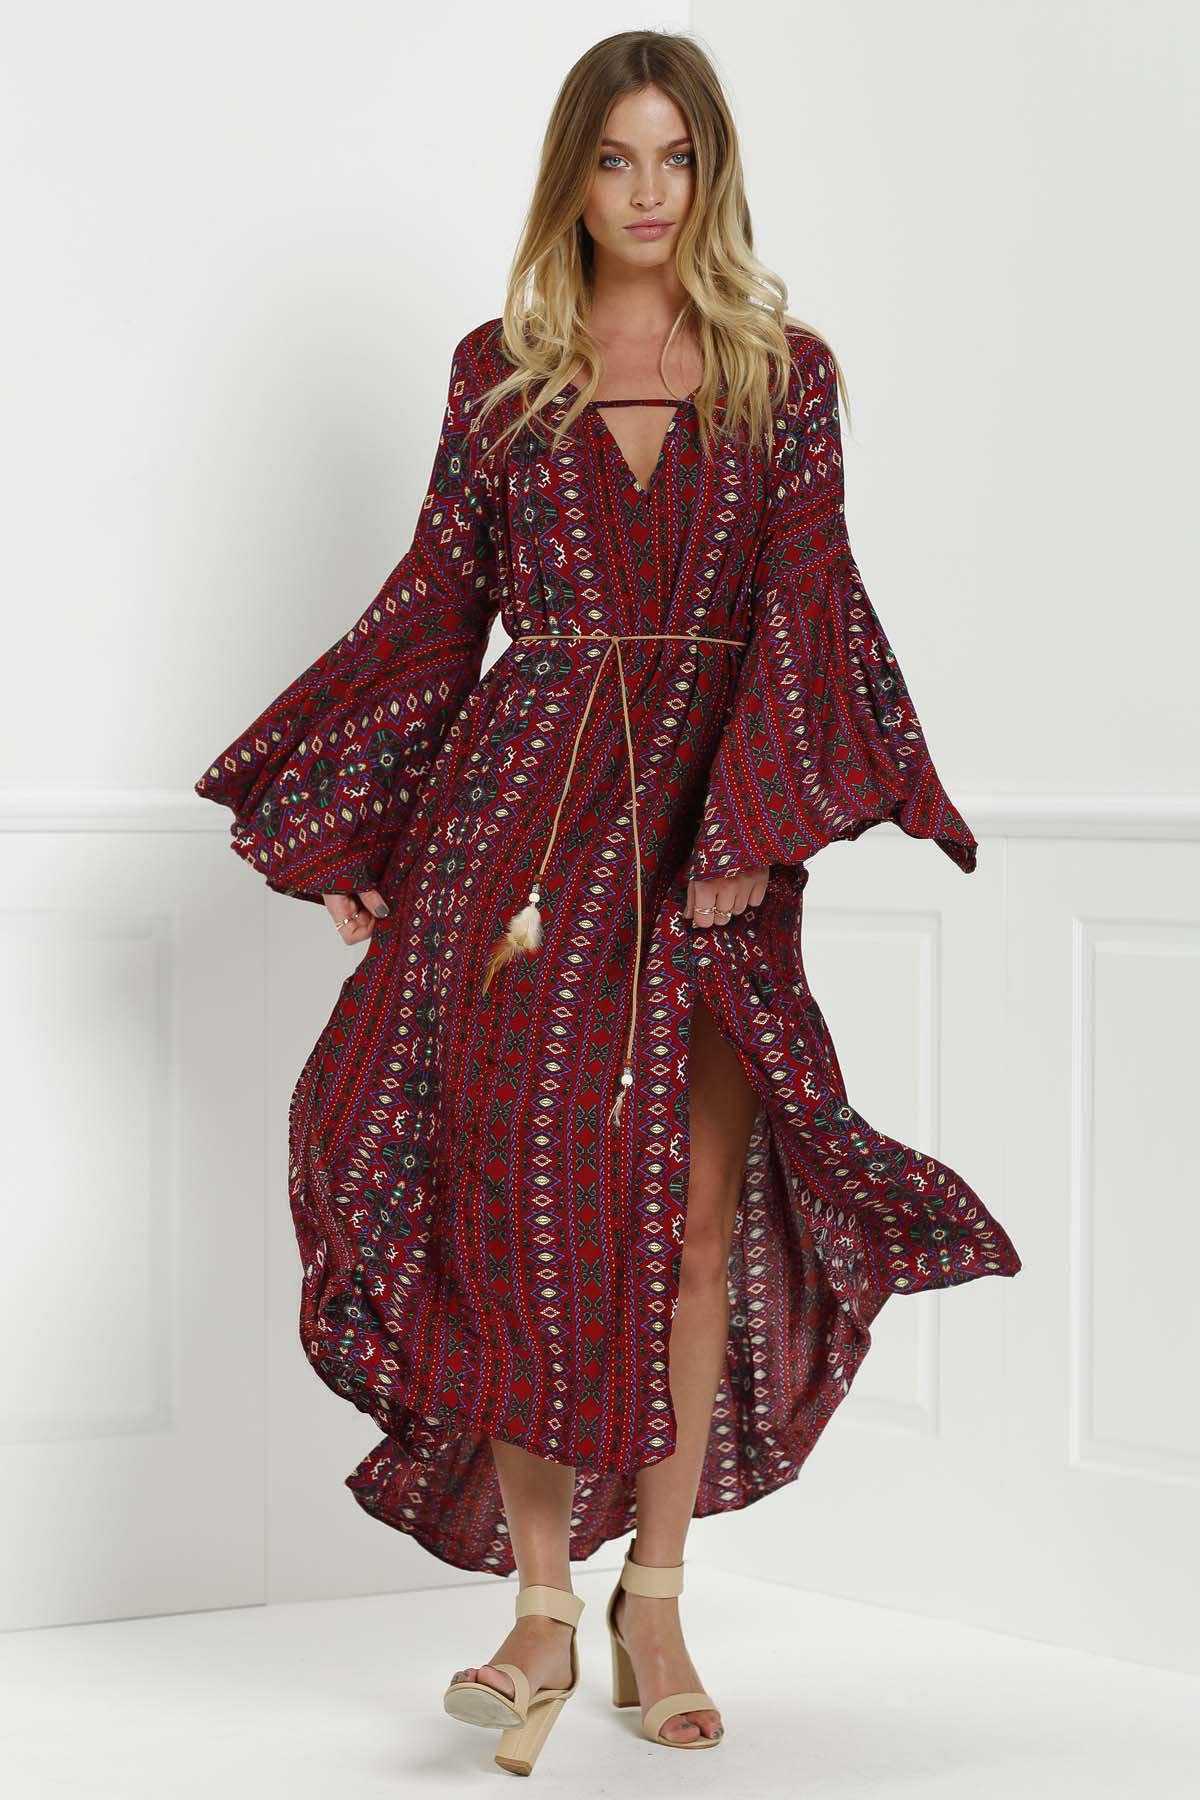 Hot Tribal Print Bell Sleeve Maxi Flowy Dress